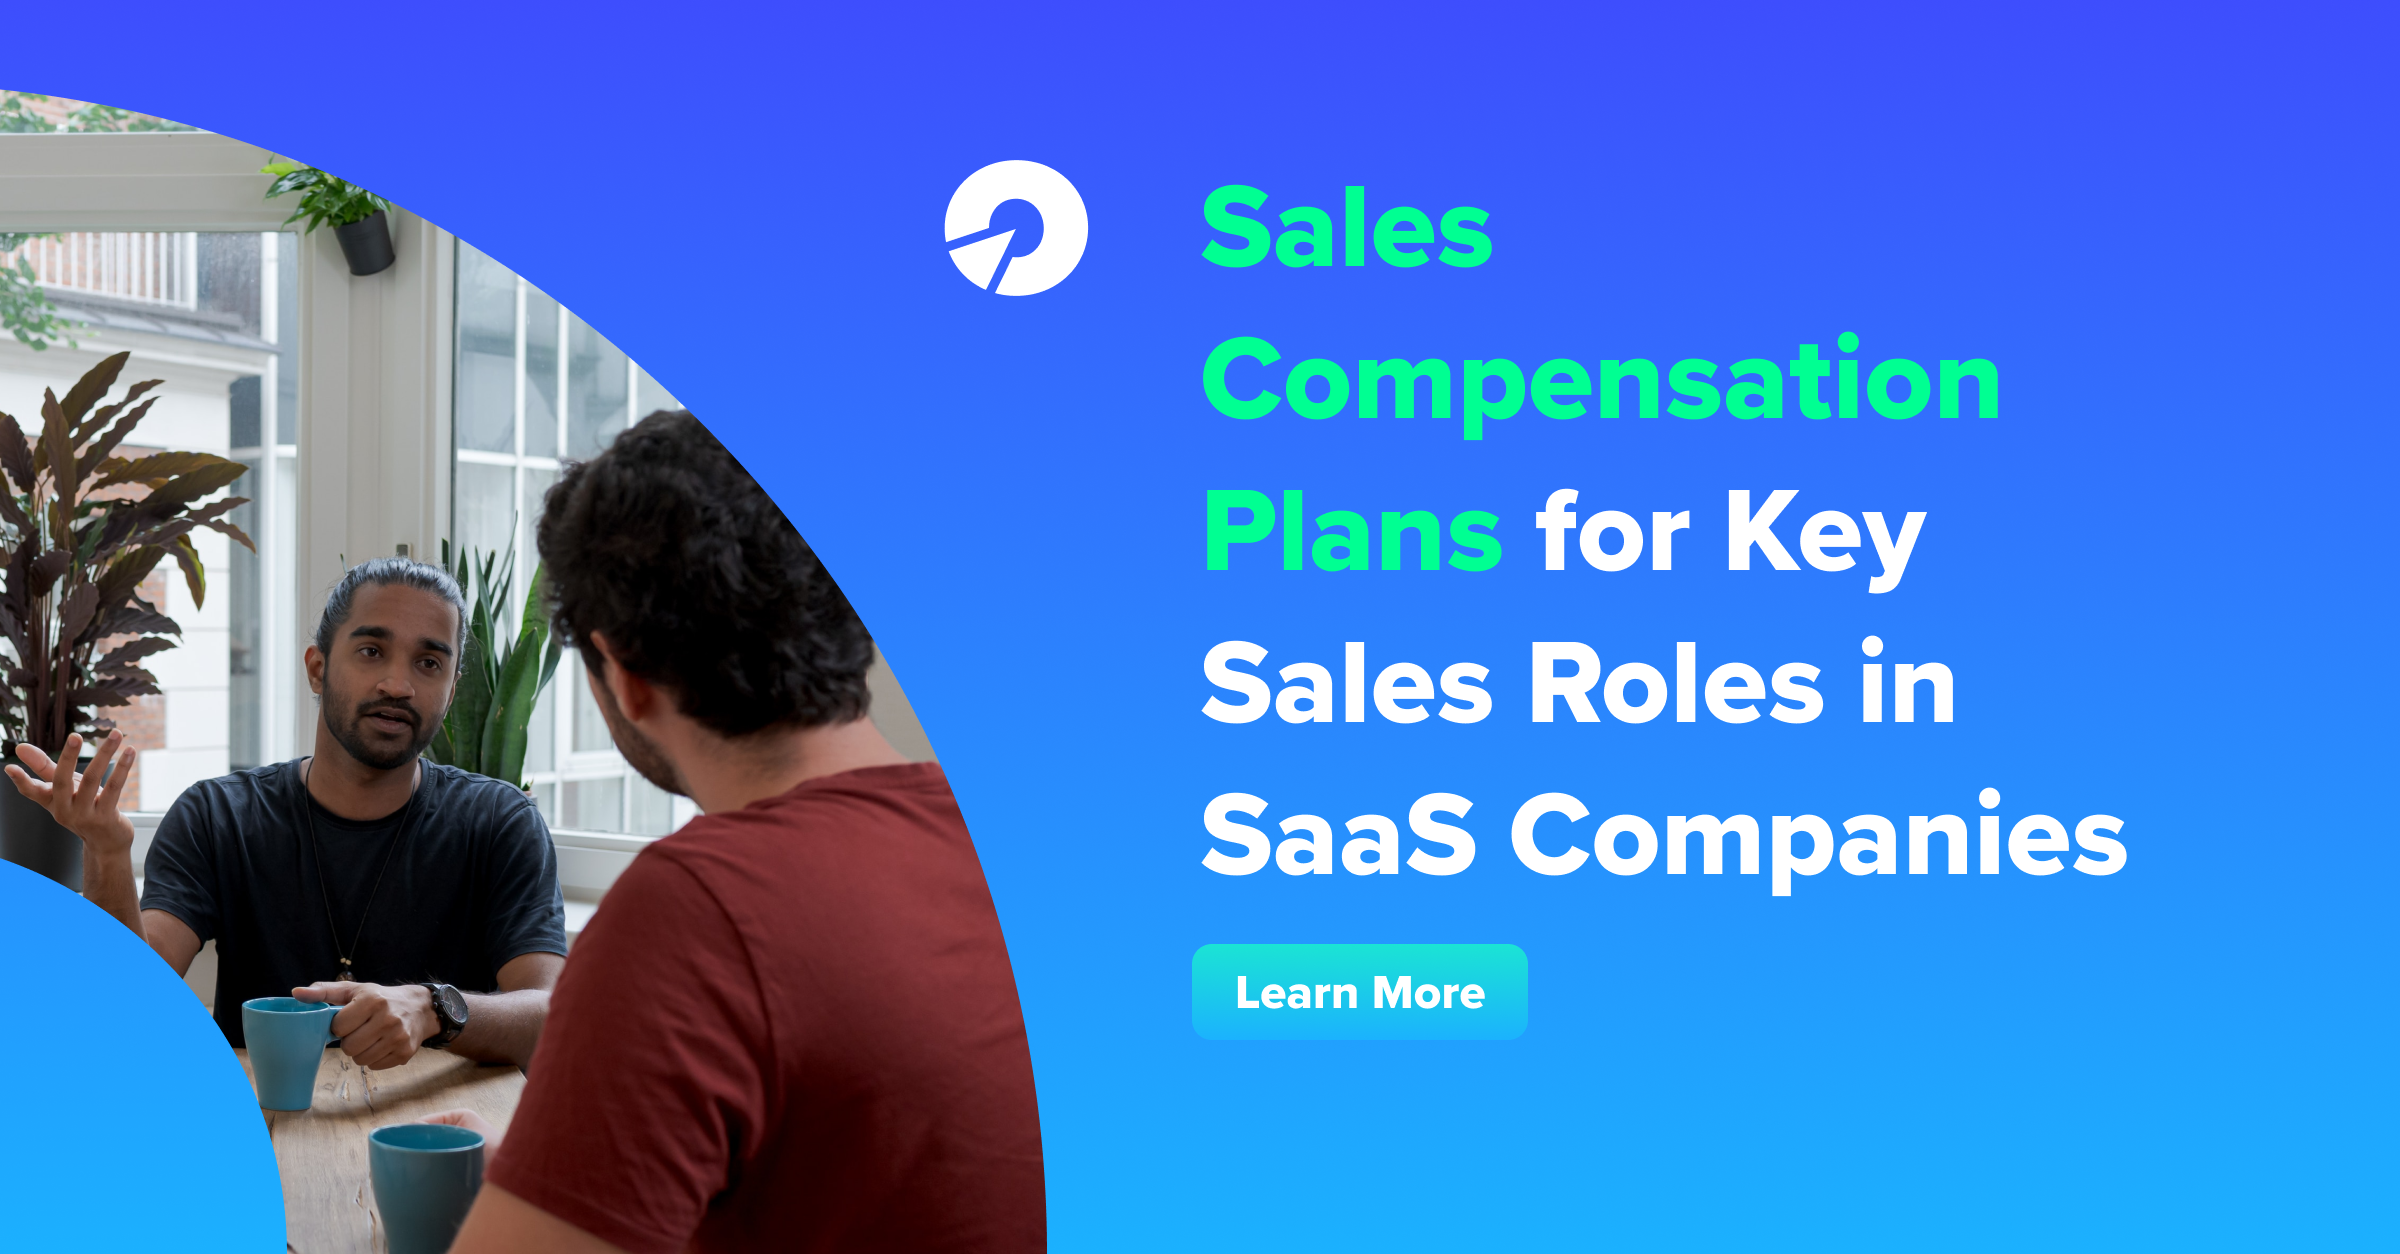 Sales Compensation Plans for Key Sales Roles in SaaS Companies